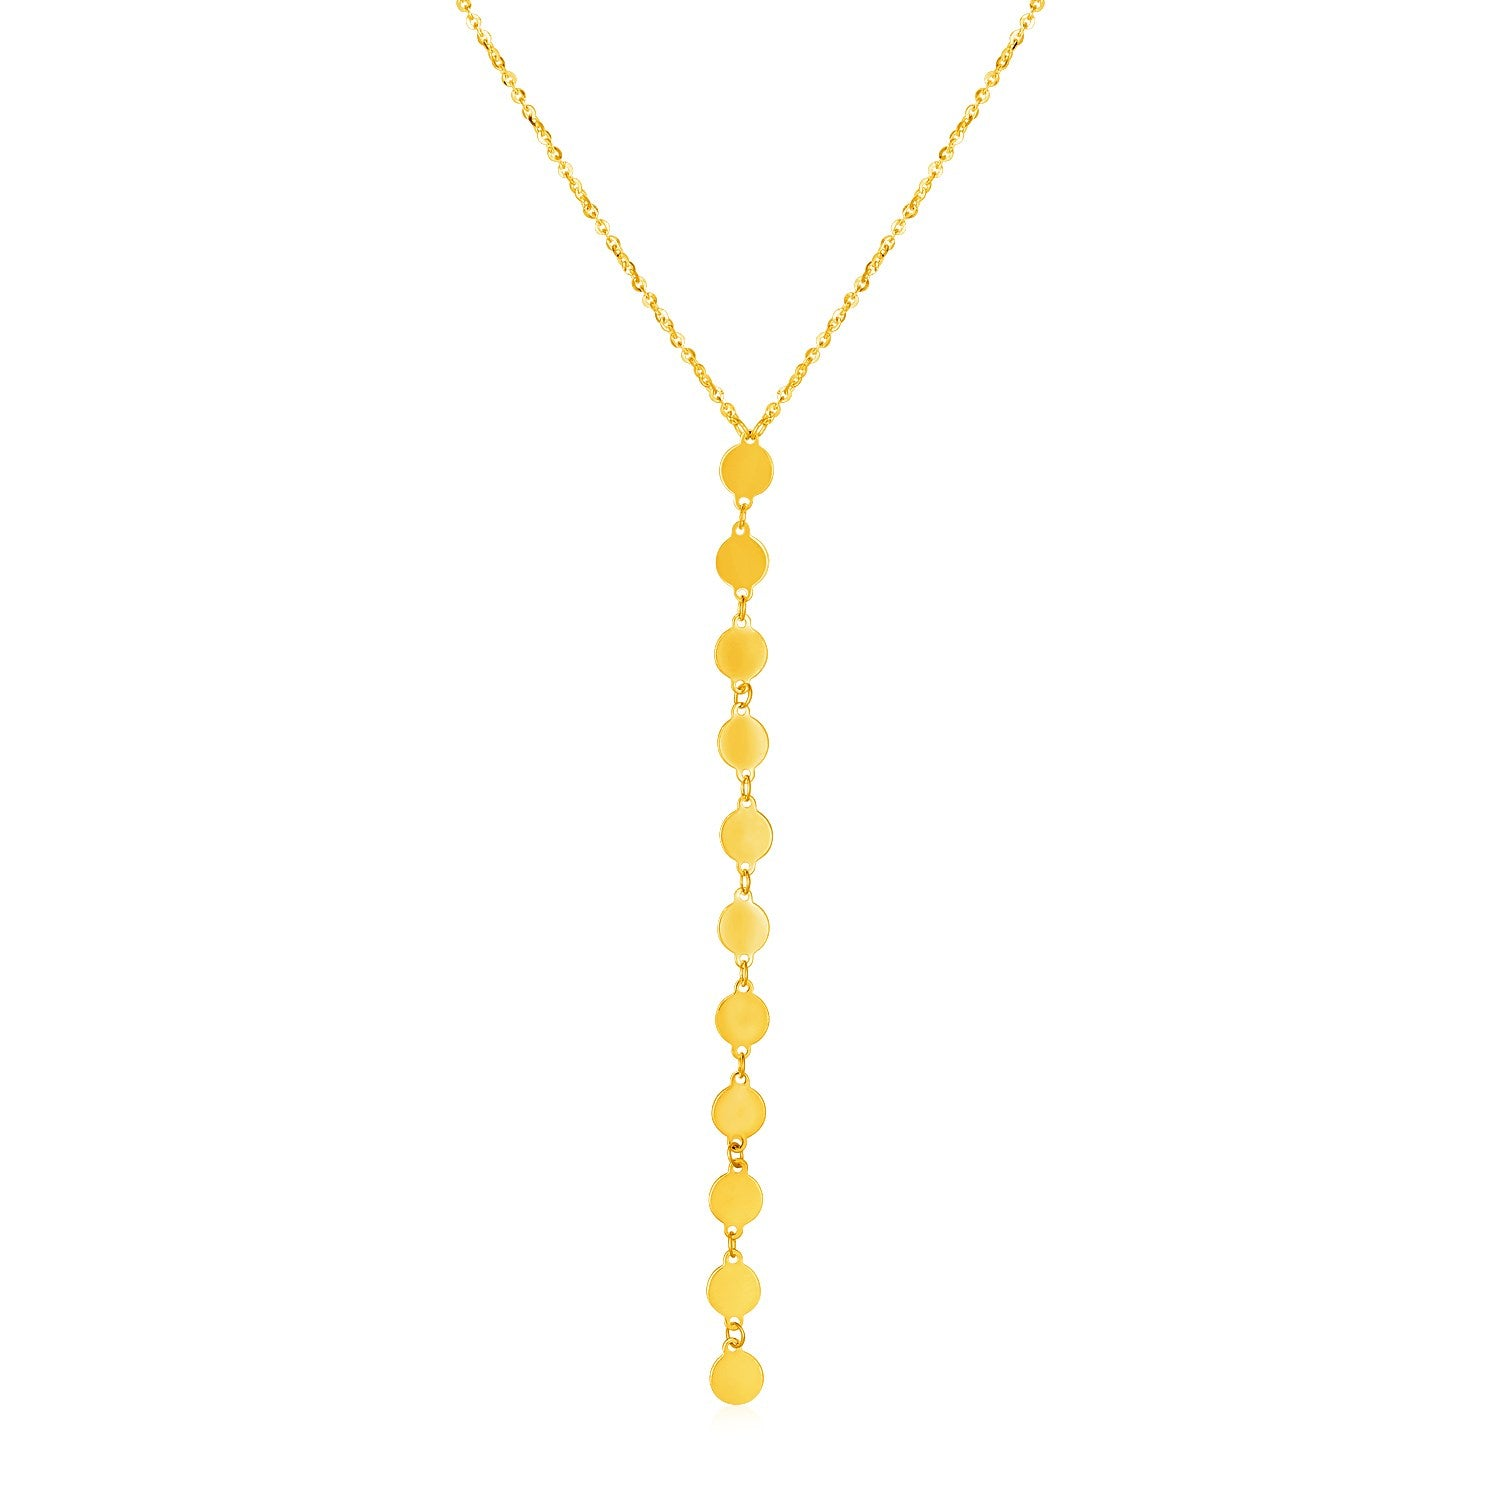 14k Yellow Gold Lariat Style Necklace with Disks